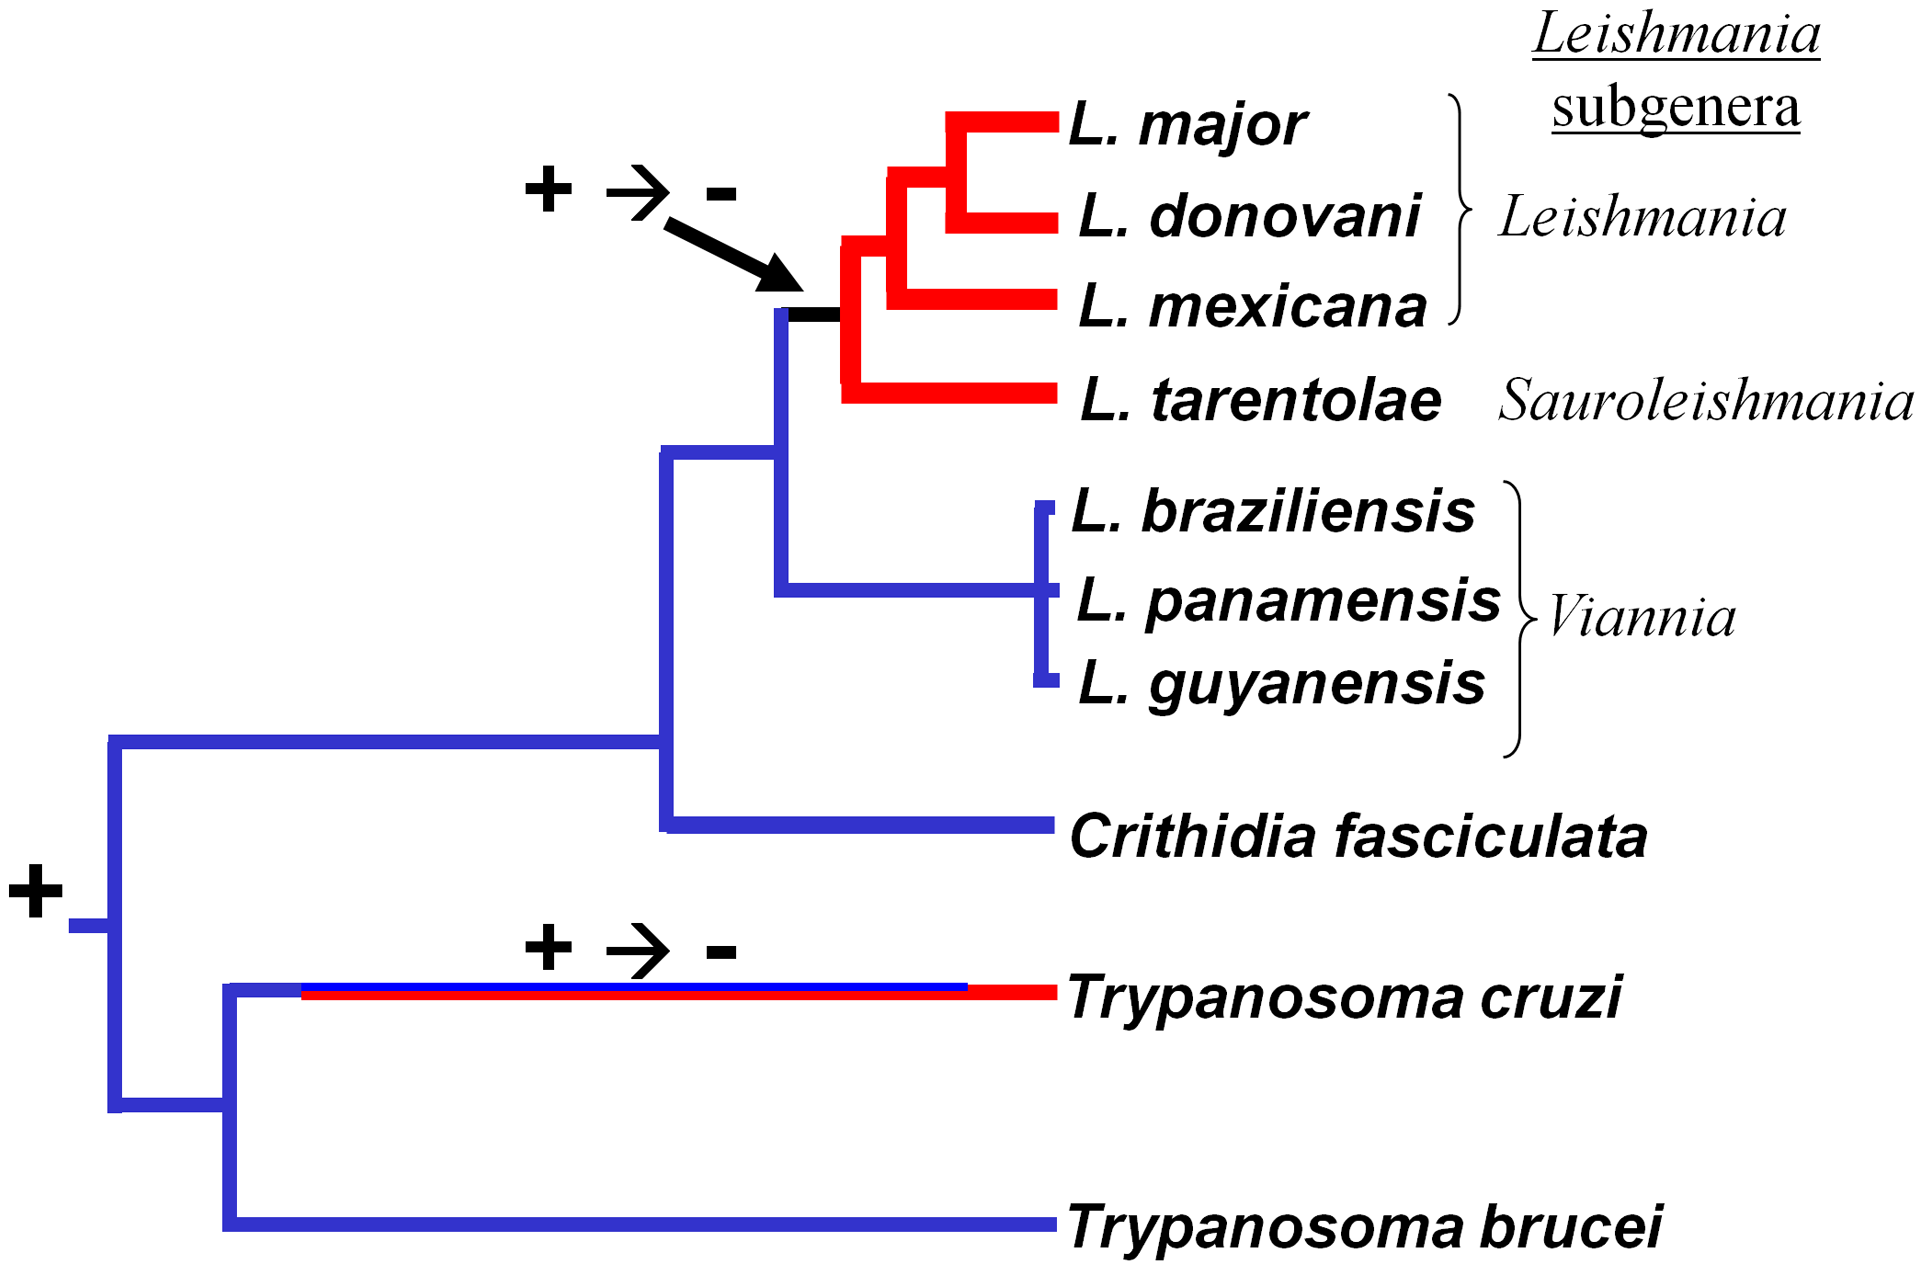 Retention and loss of RNAi machinery and activity during trypanosomatid evolution.